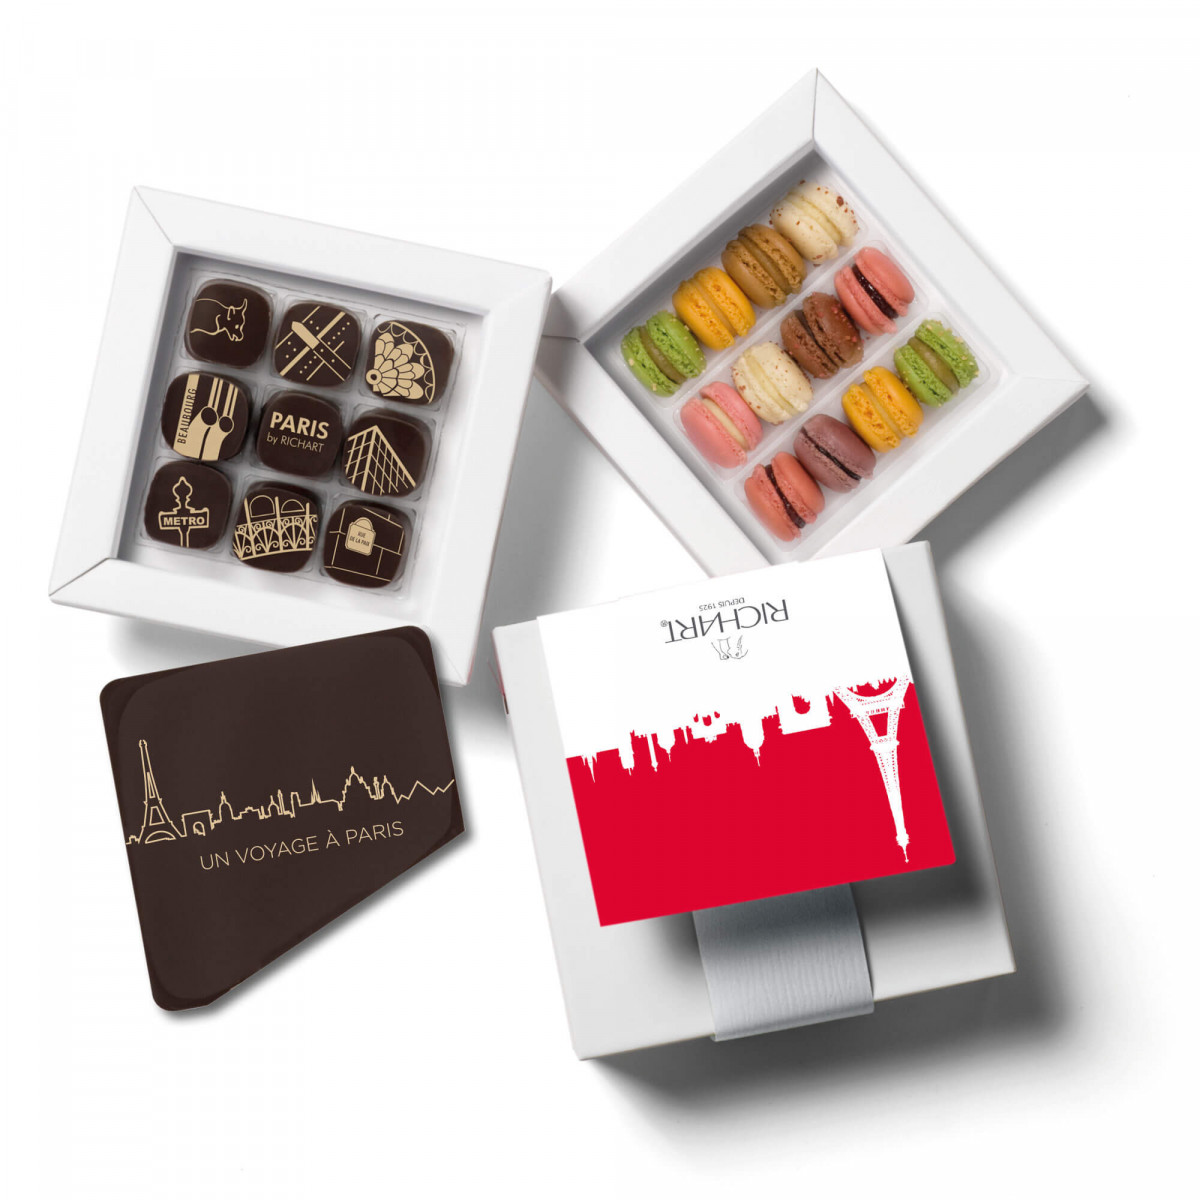 Souvenir from Paris Box of chocolates and French Macarons